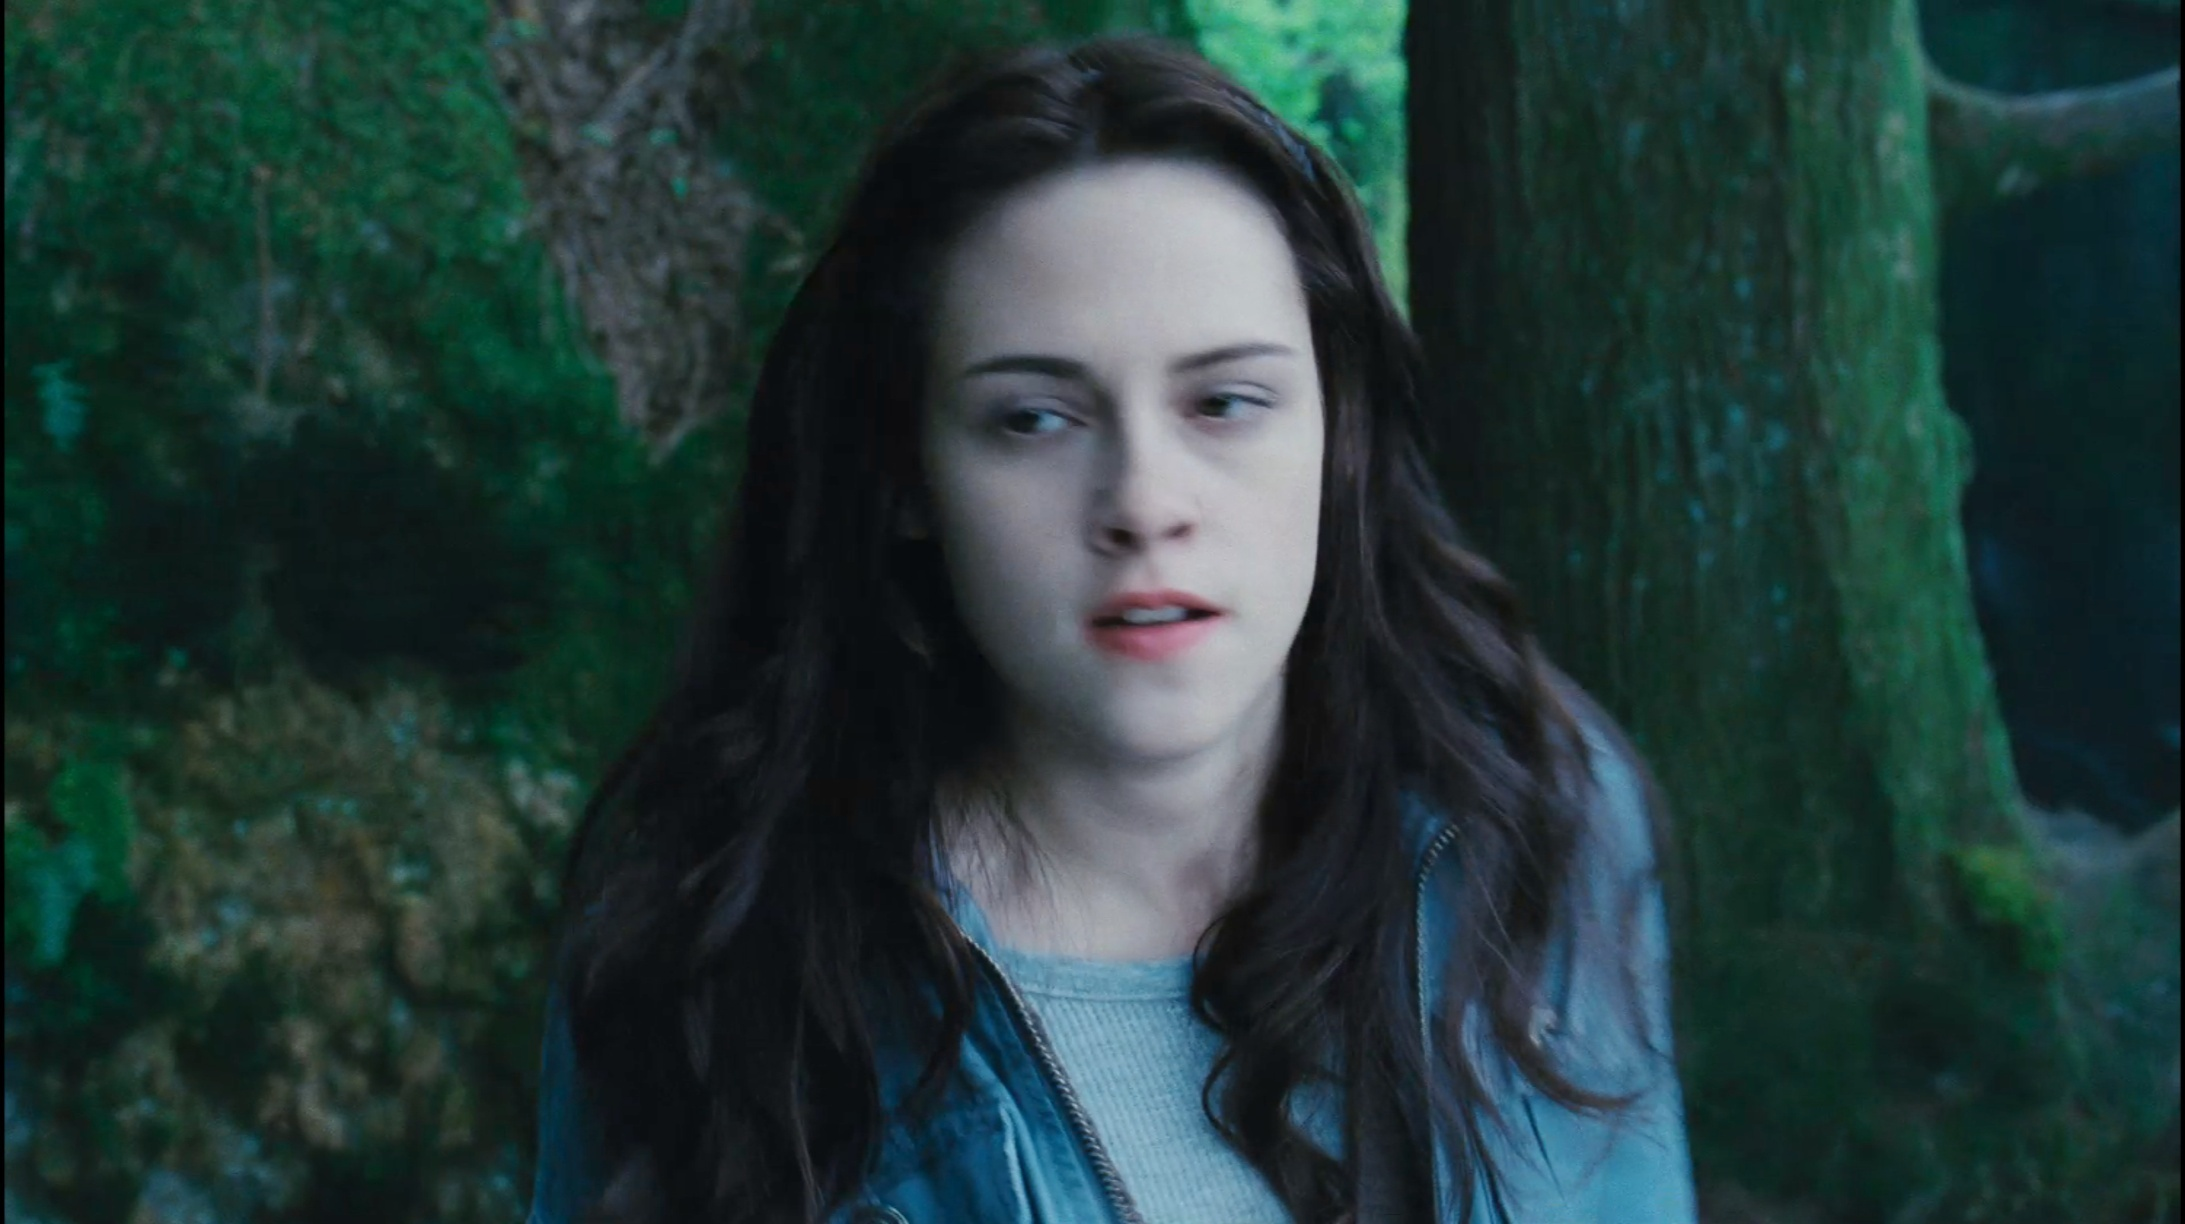 Bella Twilight trailer 3 HQ - Bella Swan Image (2558499) - Fanpop